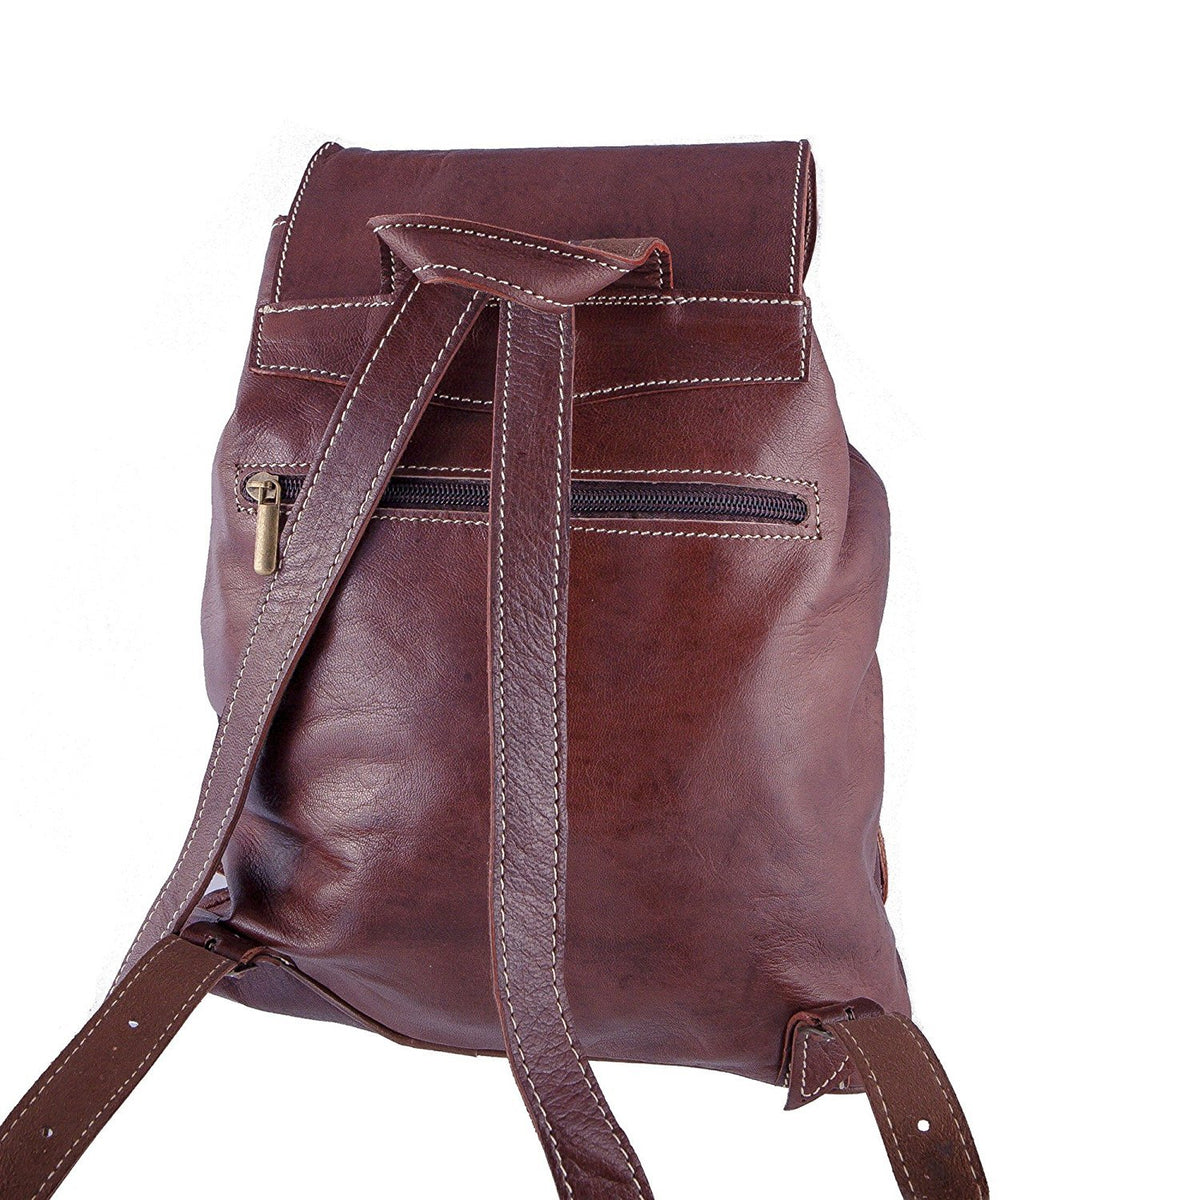 Vintage Style Women's Backpack - Handmade - Dark Brown